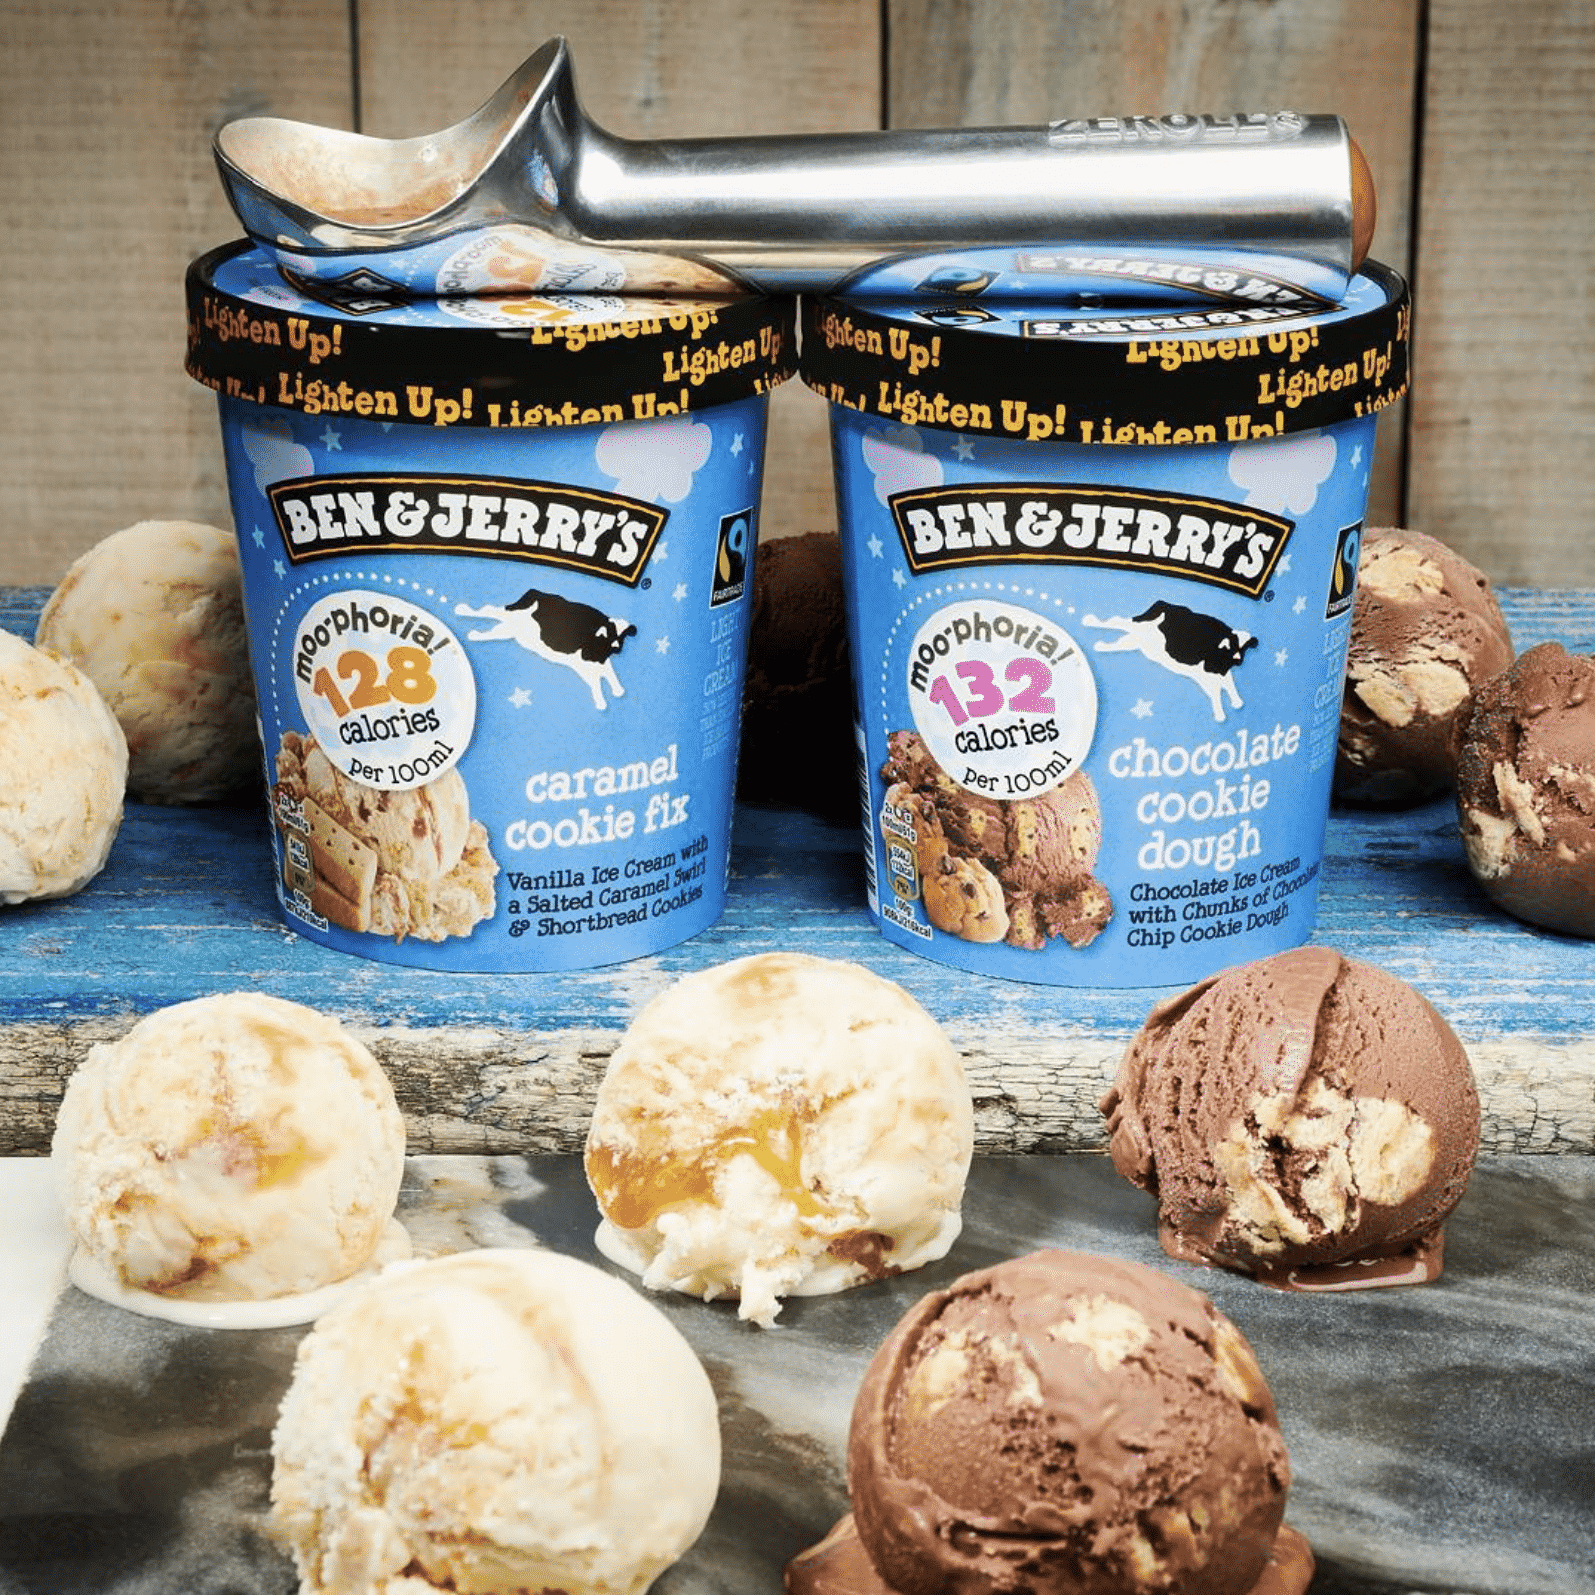 Shopping Essentials Top Pick – Ben & Jerry's Moophoria